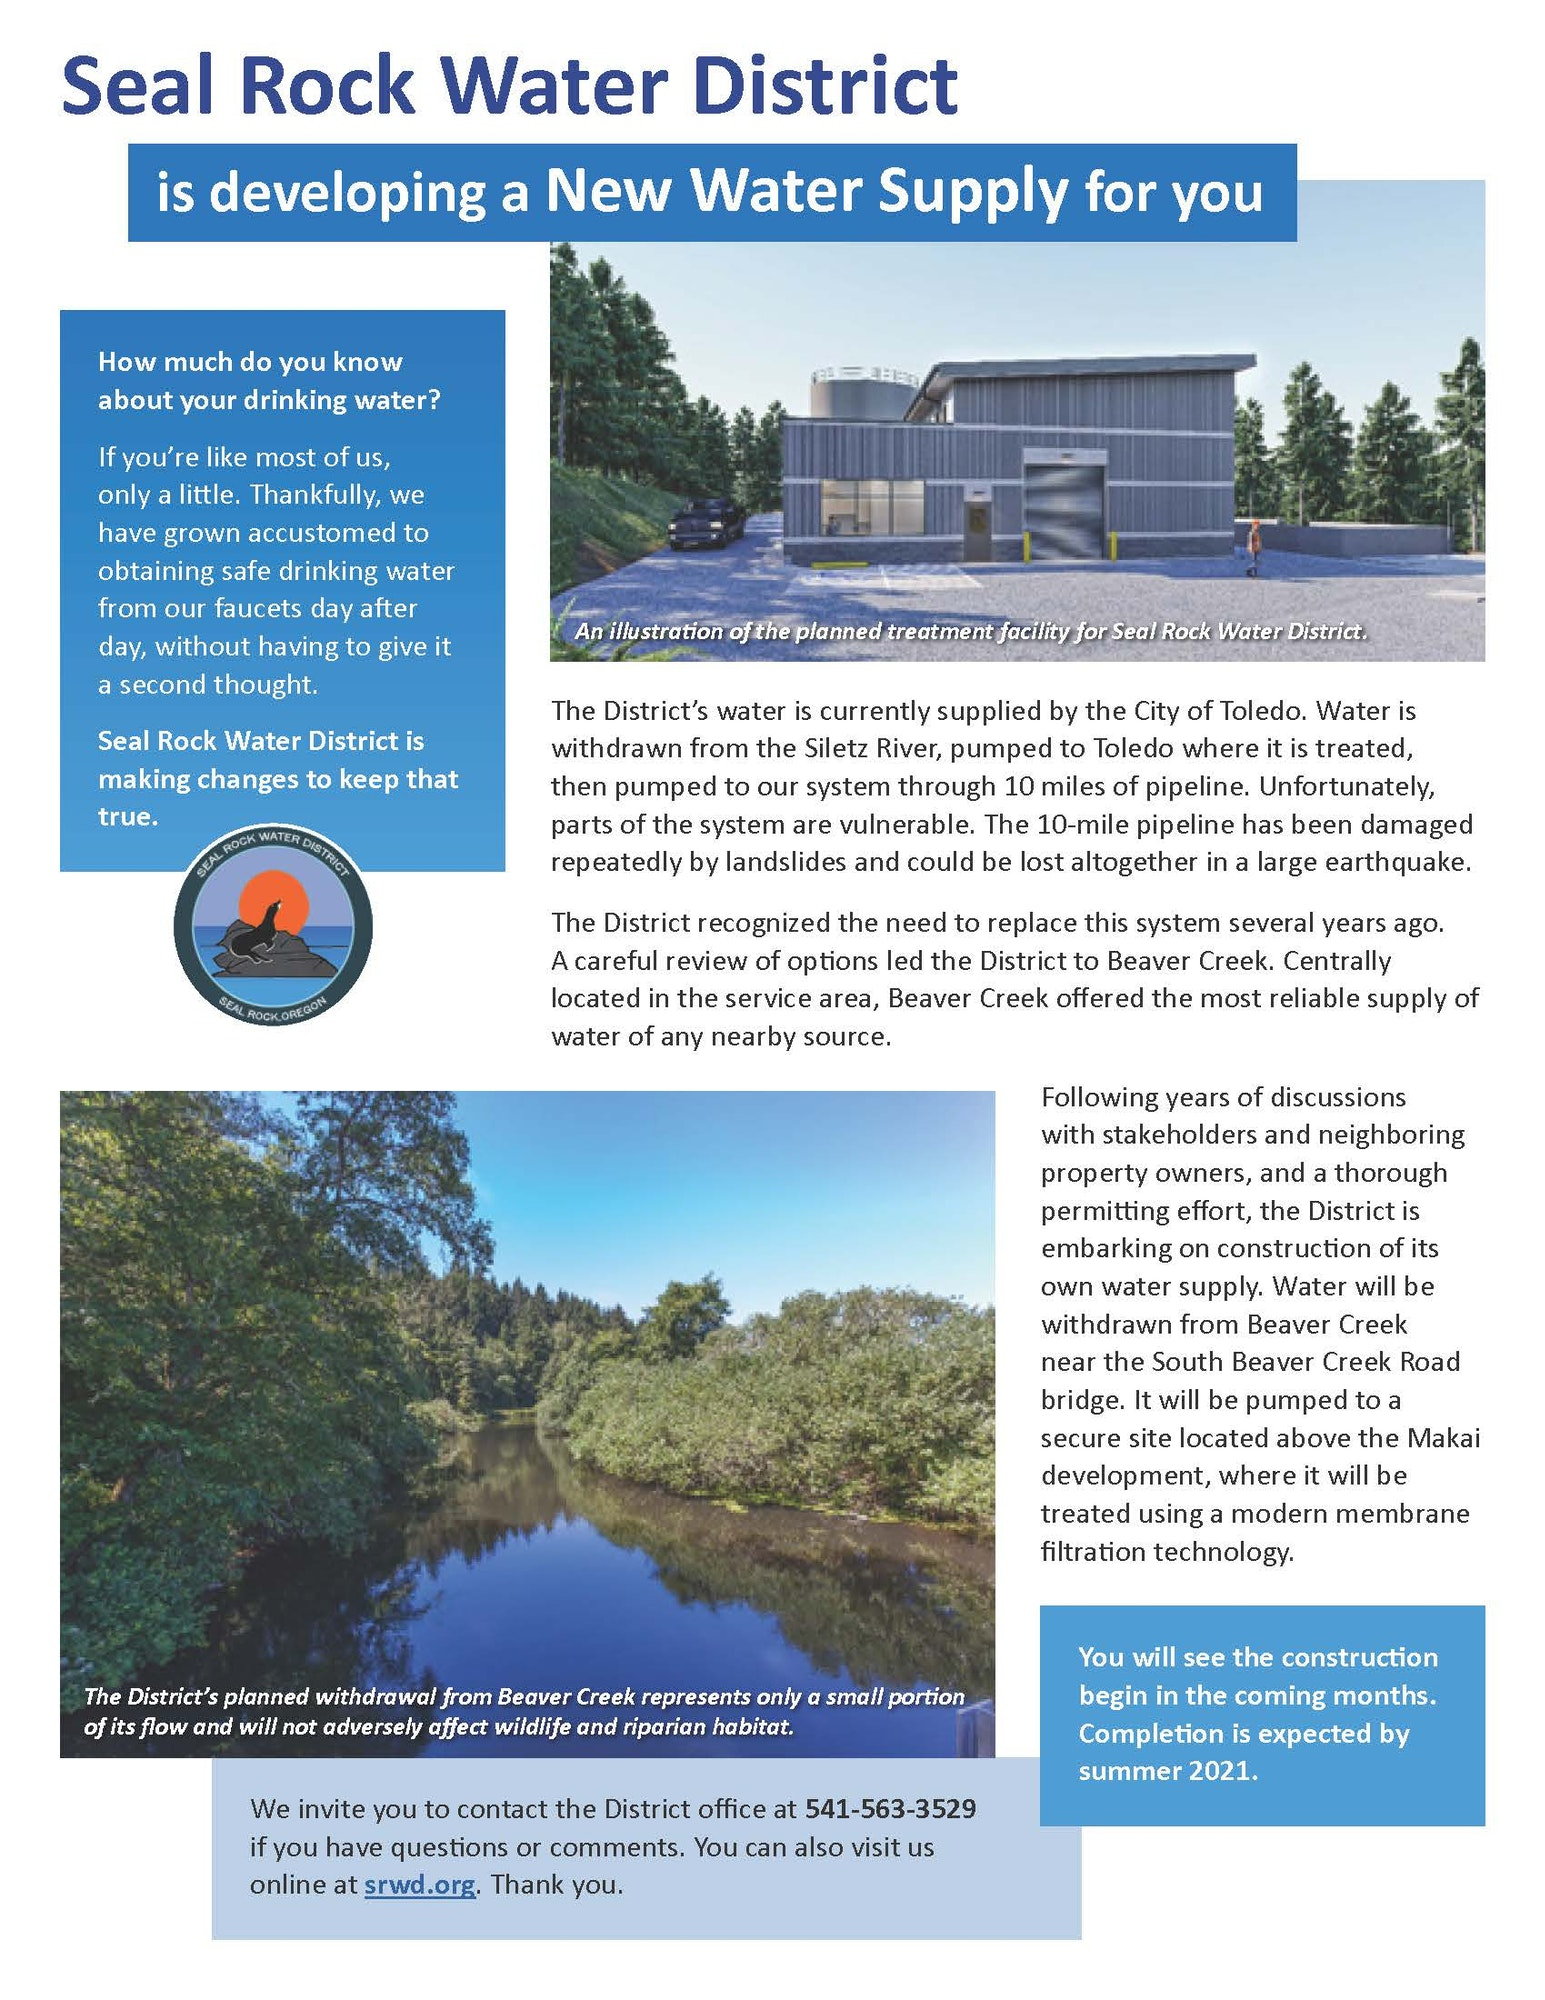 Seal Rock Water District flyer regarding our new water supply project